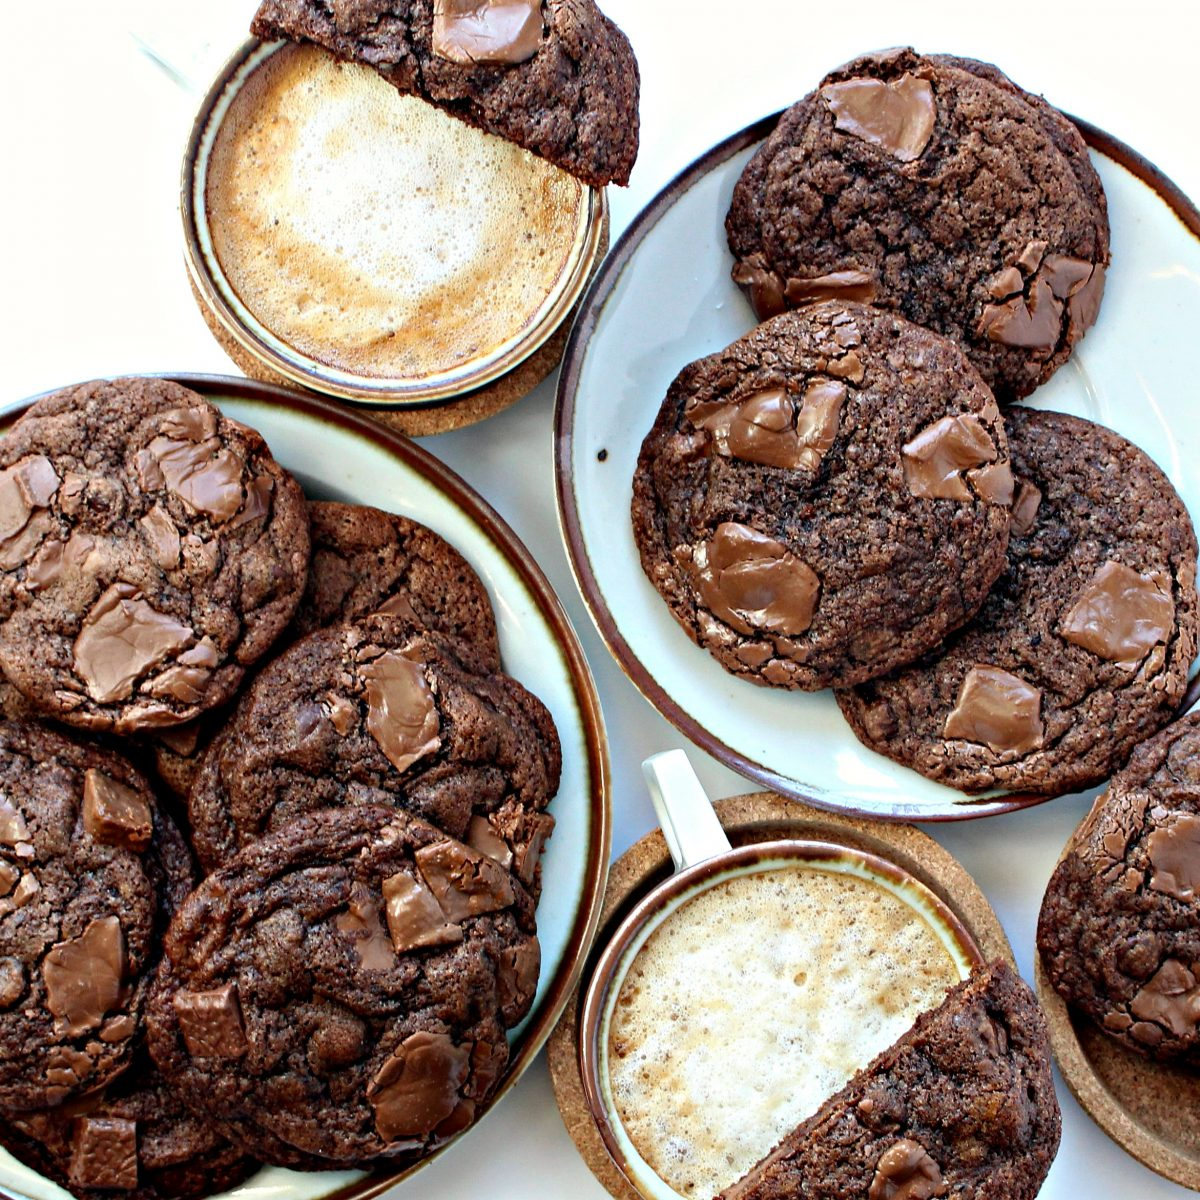 Chocolate Chip Mocha Cookies on plates with coffee cups.